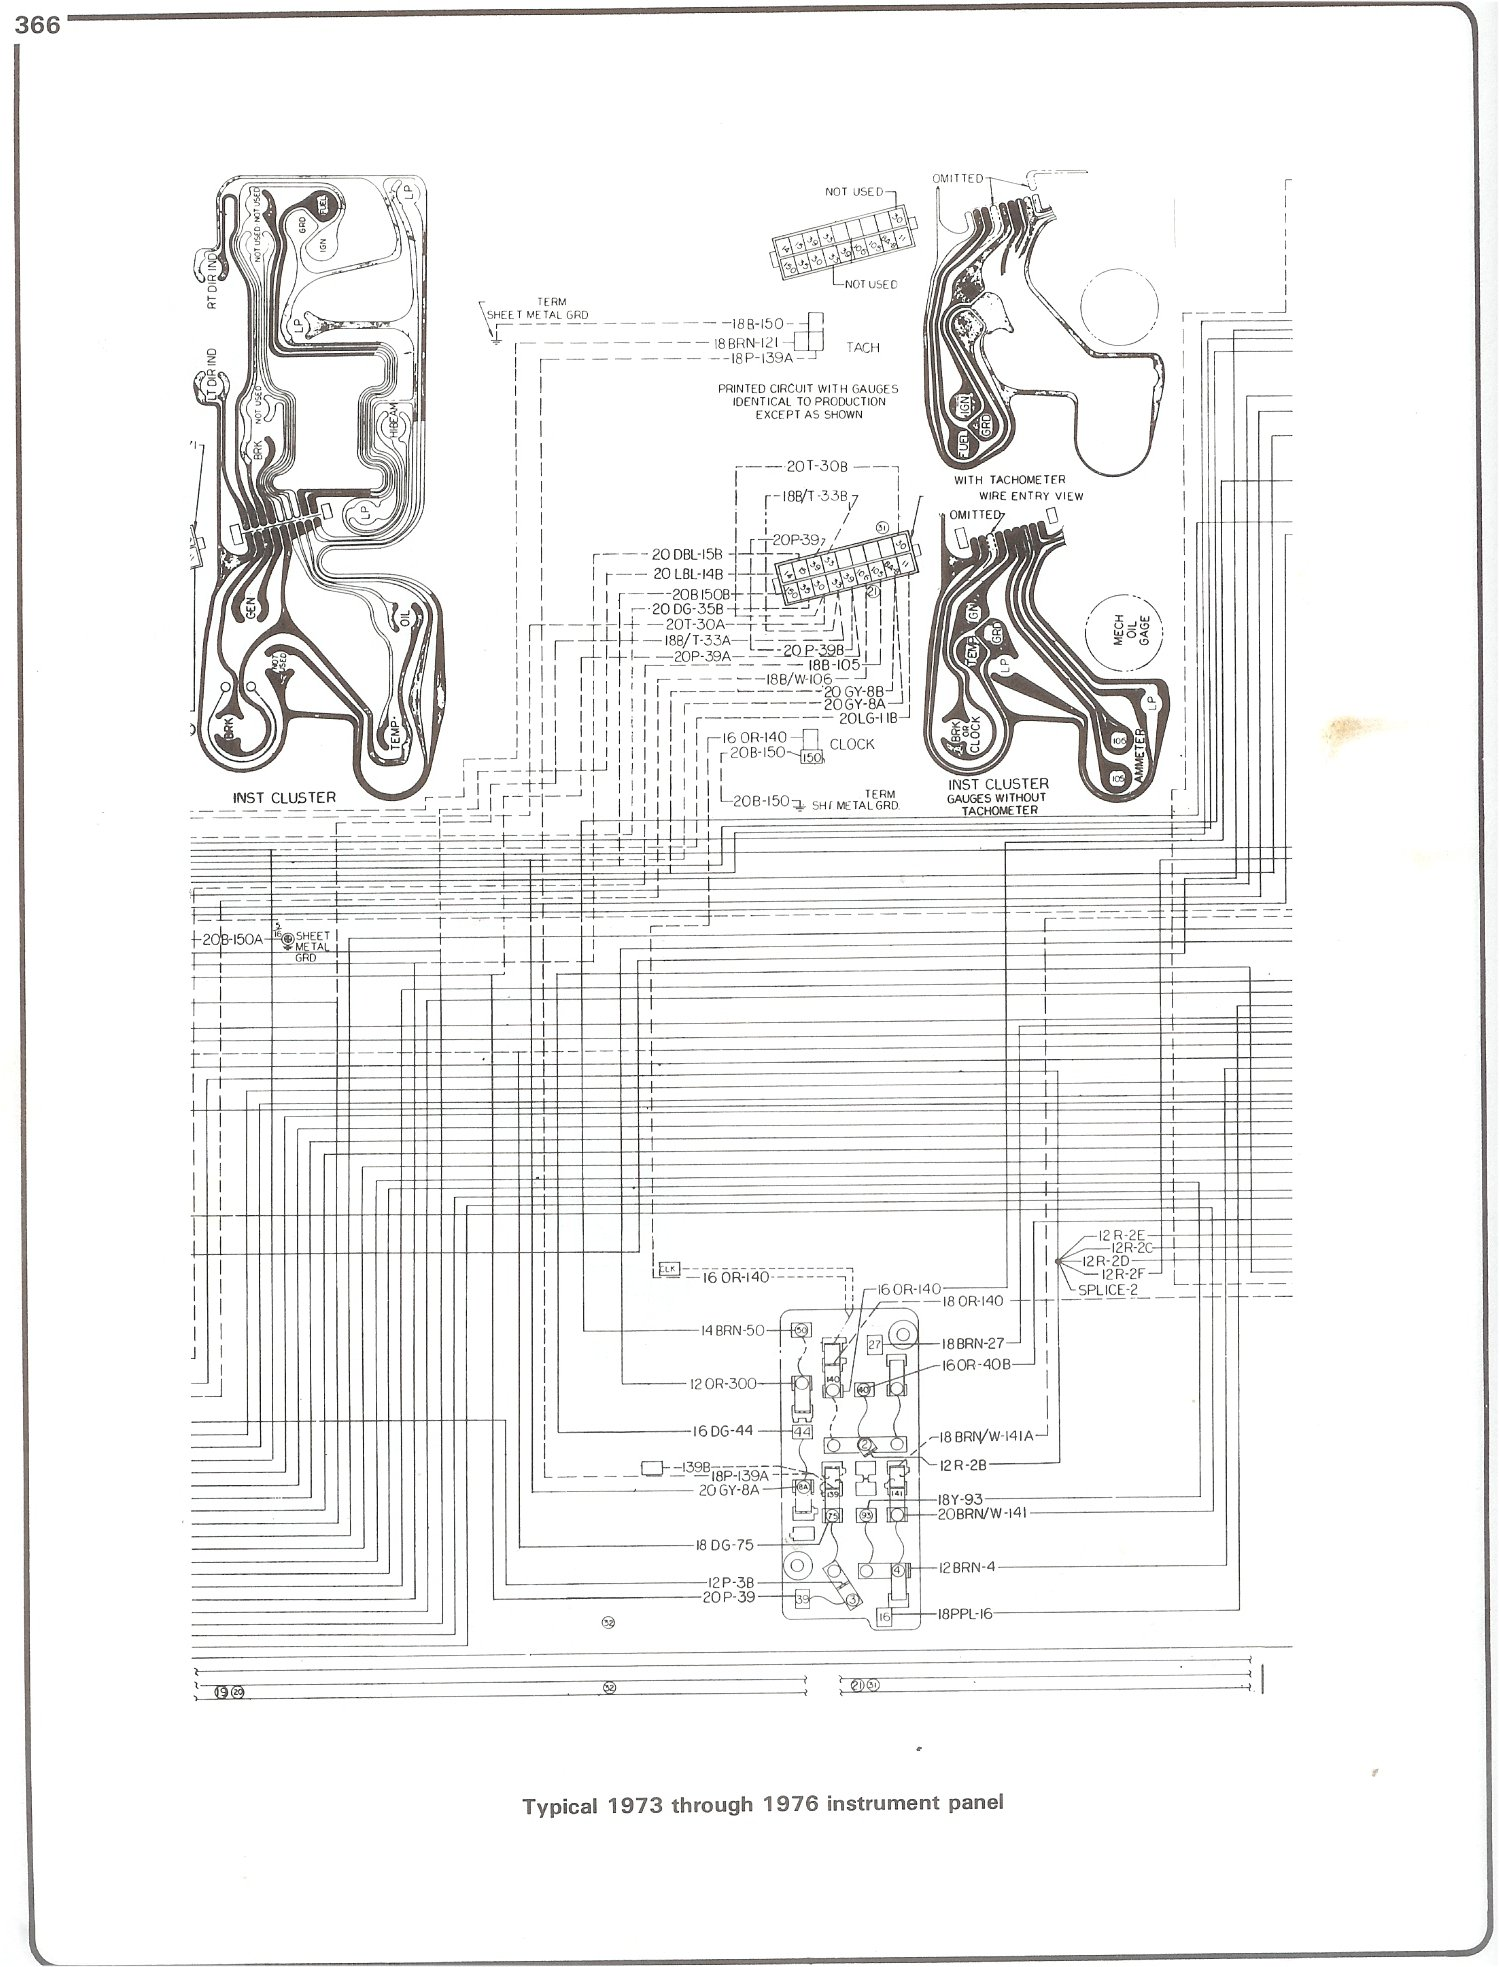 73 76_instrument complete 73 87 wiring diagrams 85 Chevy Truck Wiring Diagram at gsmportal.co